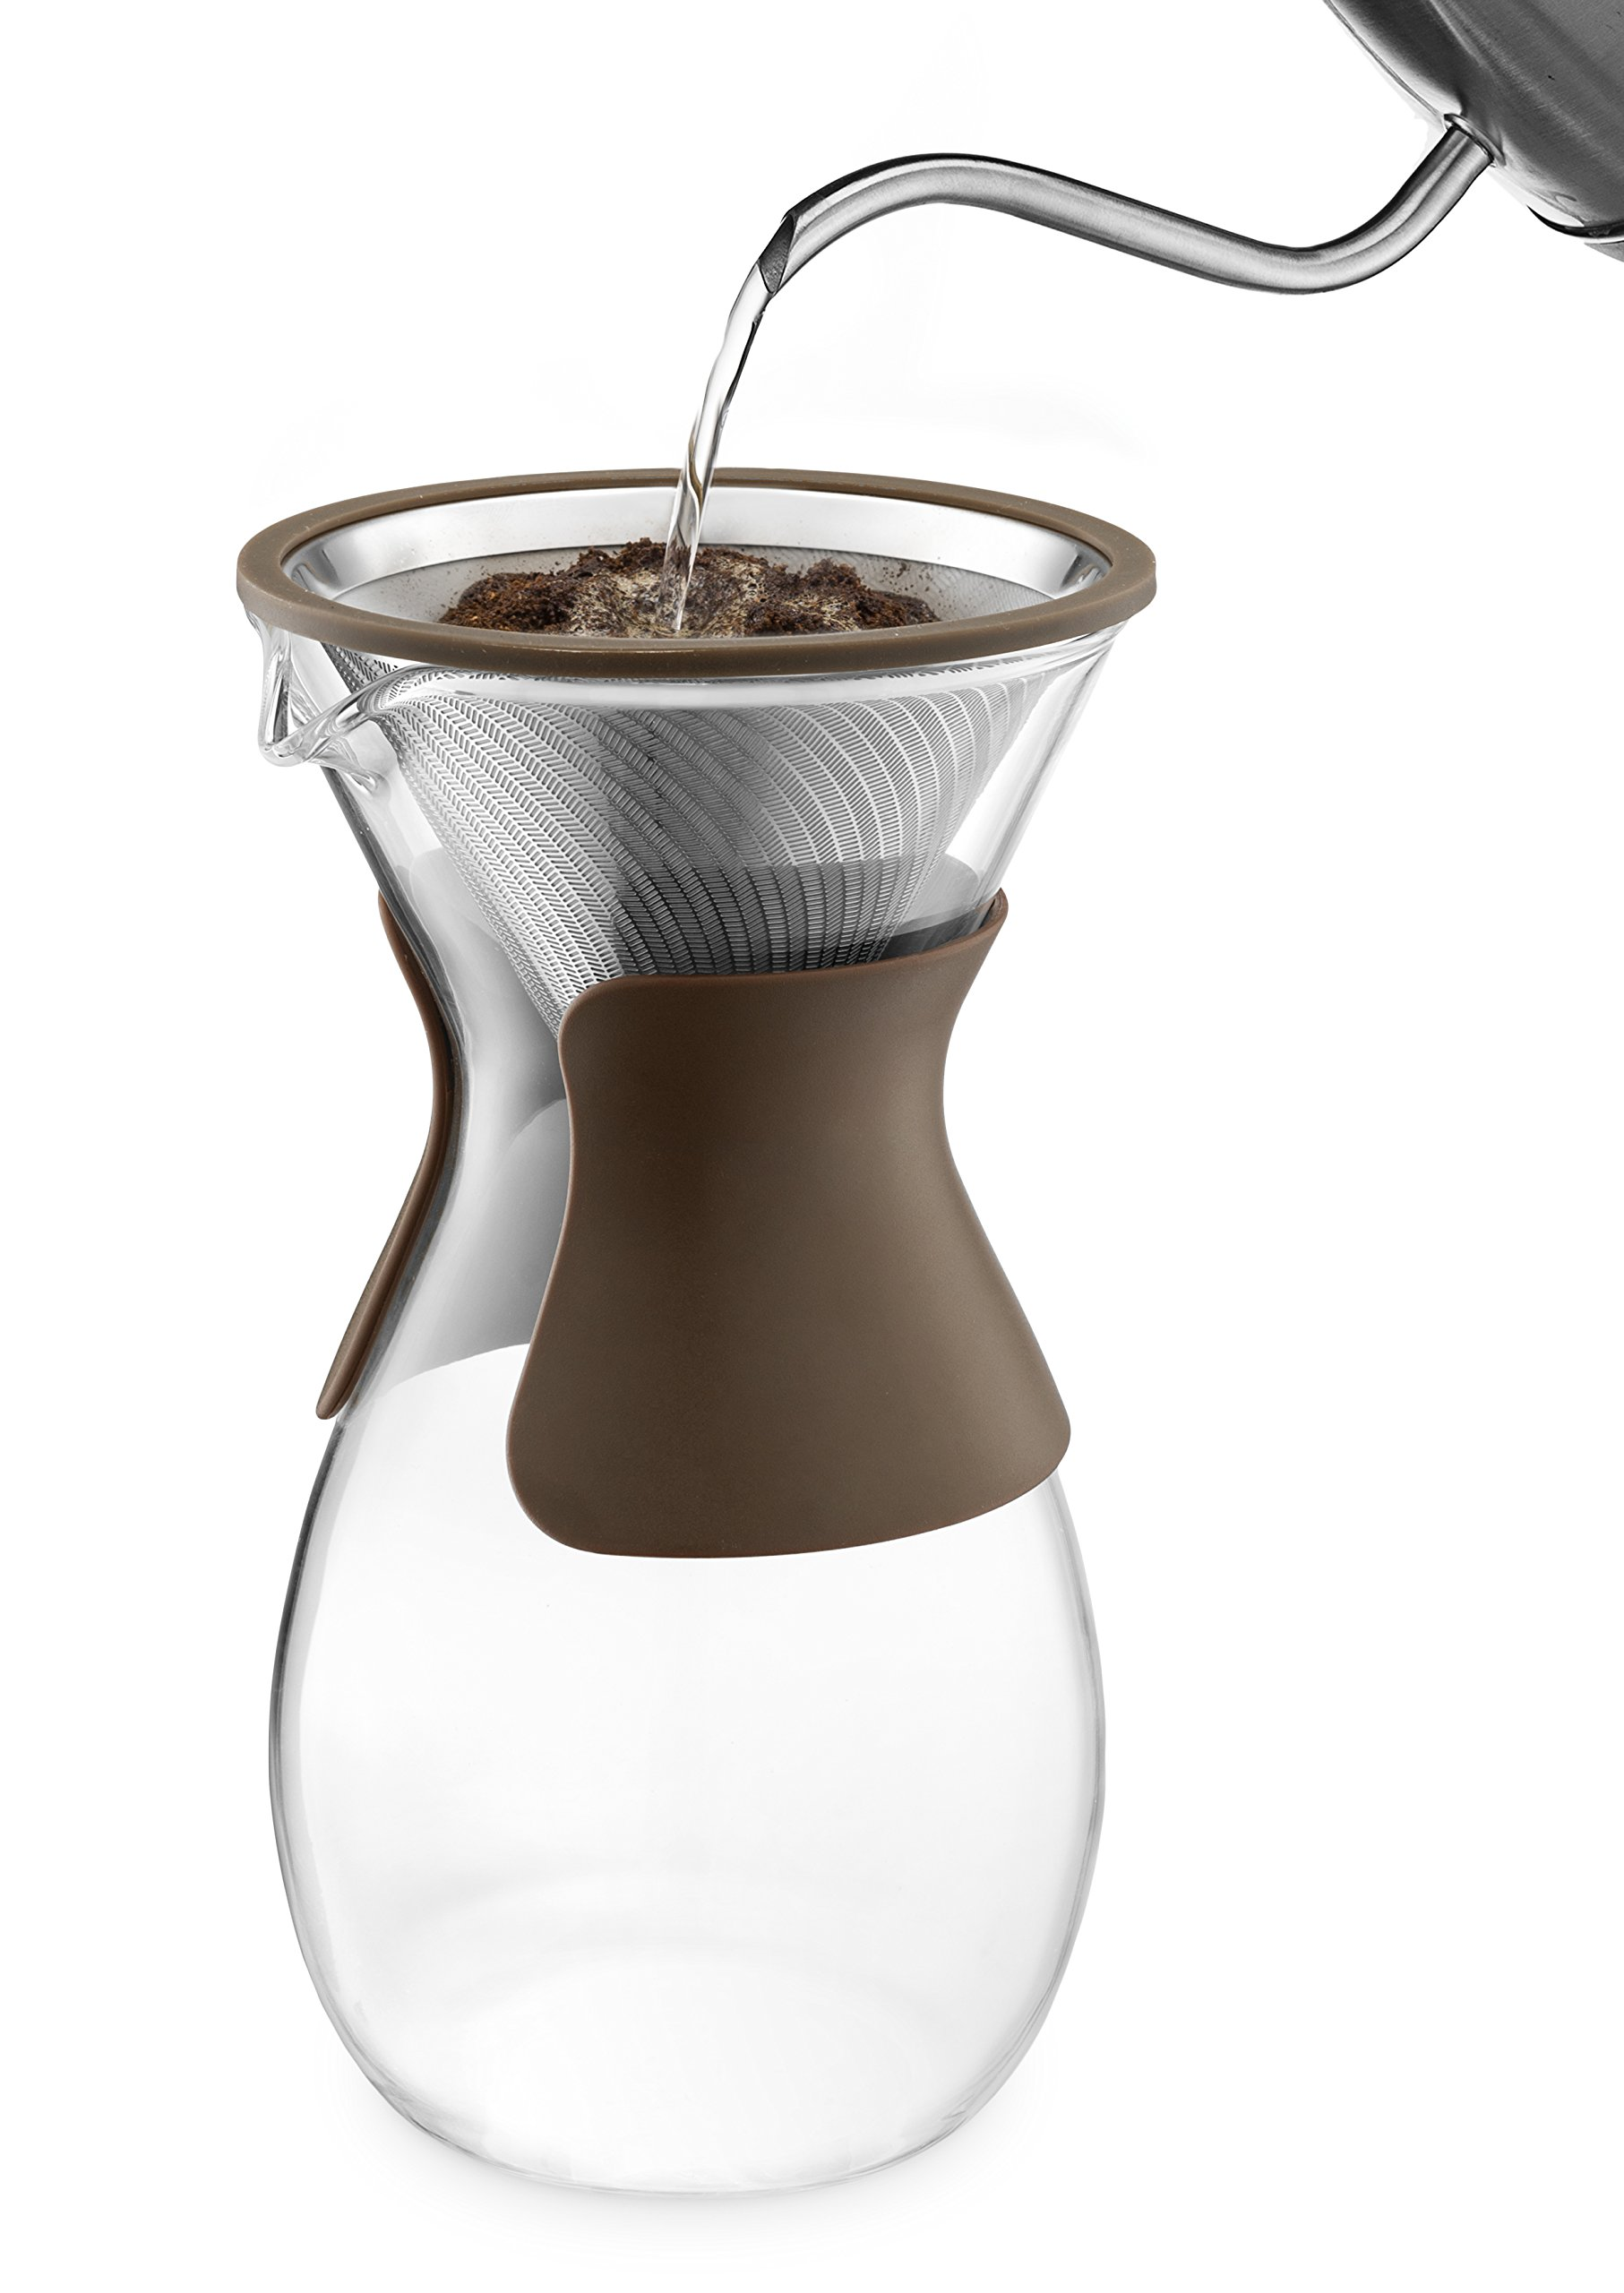 Osaka Pour Over Coffee Maker with Reusable Stainless Steel Drip Filter, 37 oz (7-Cup) Glass Carafe and Lid 'Senso-JI', Brown by Actor (Image #4)